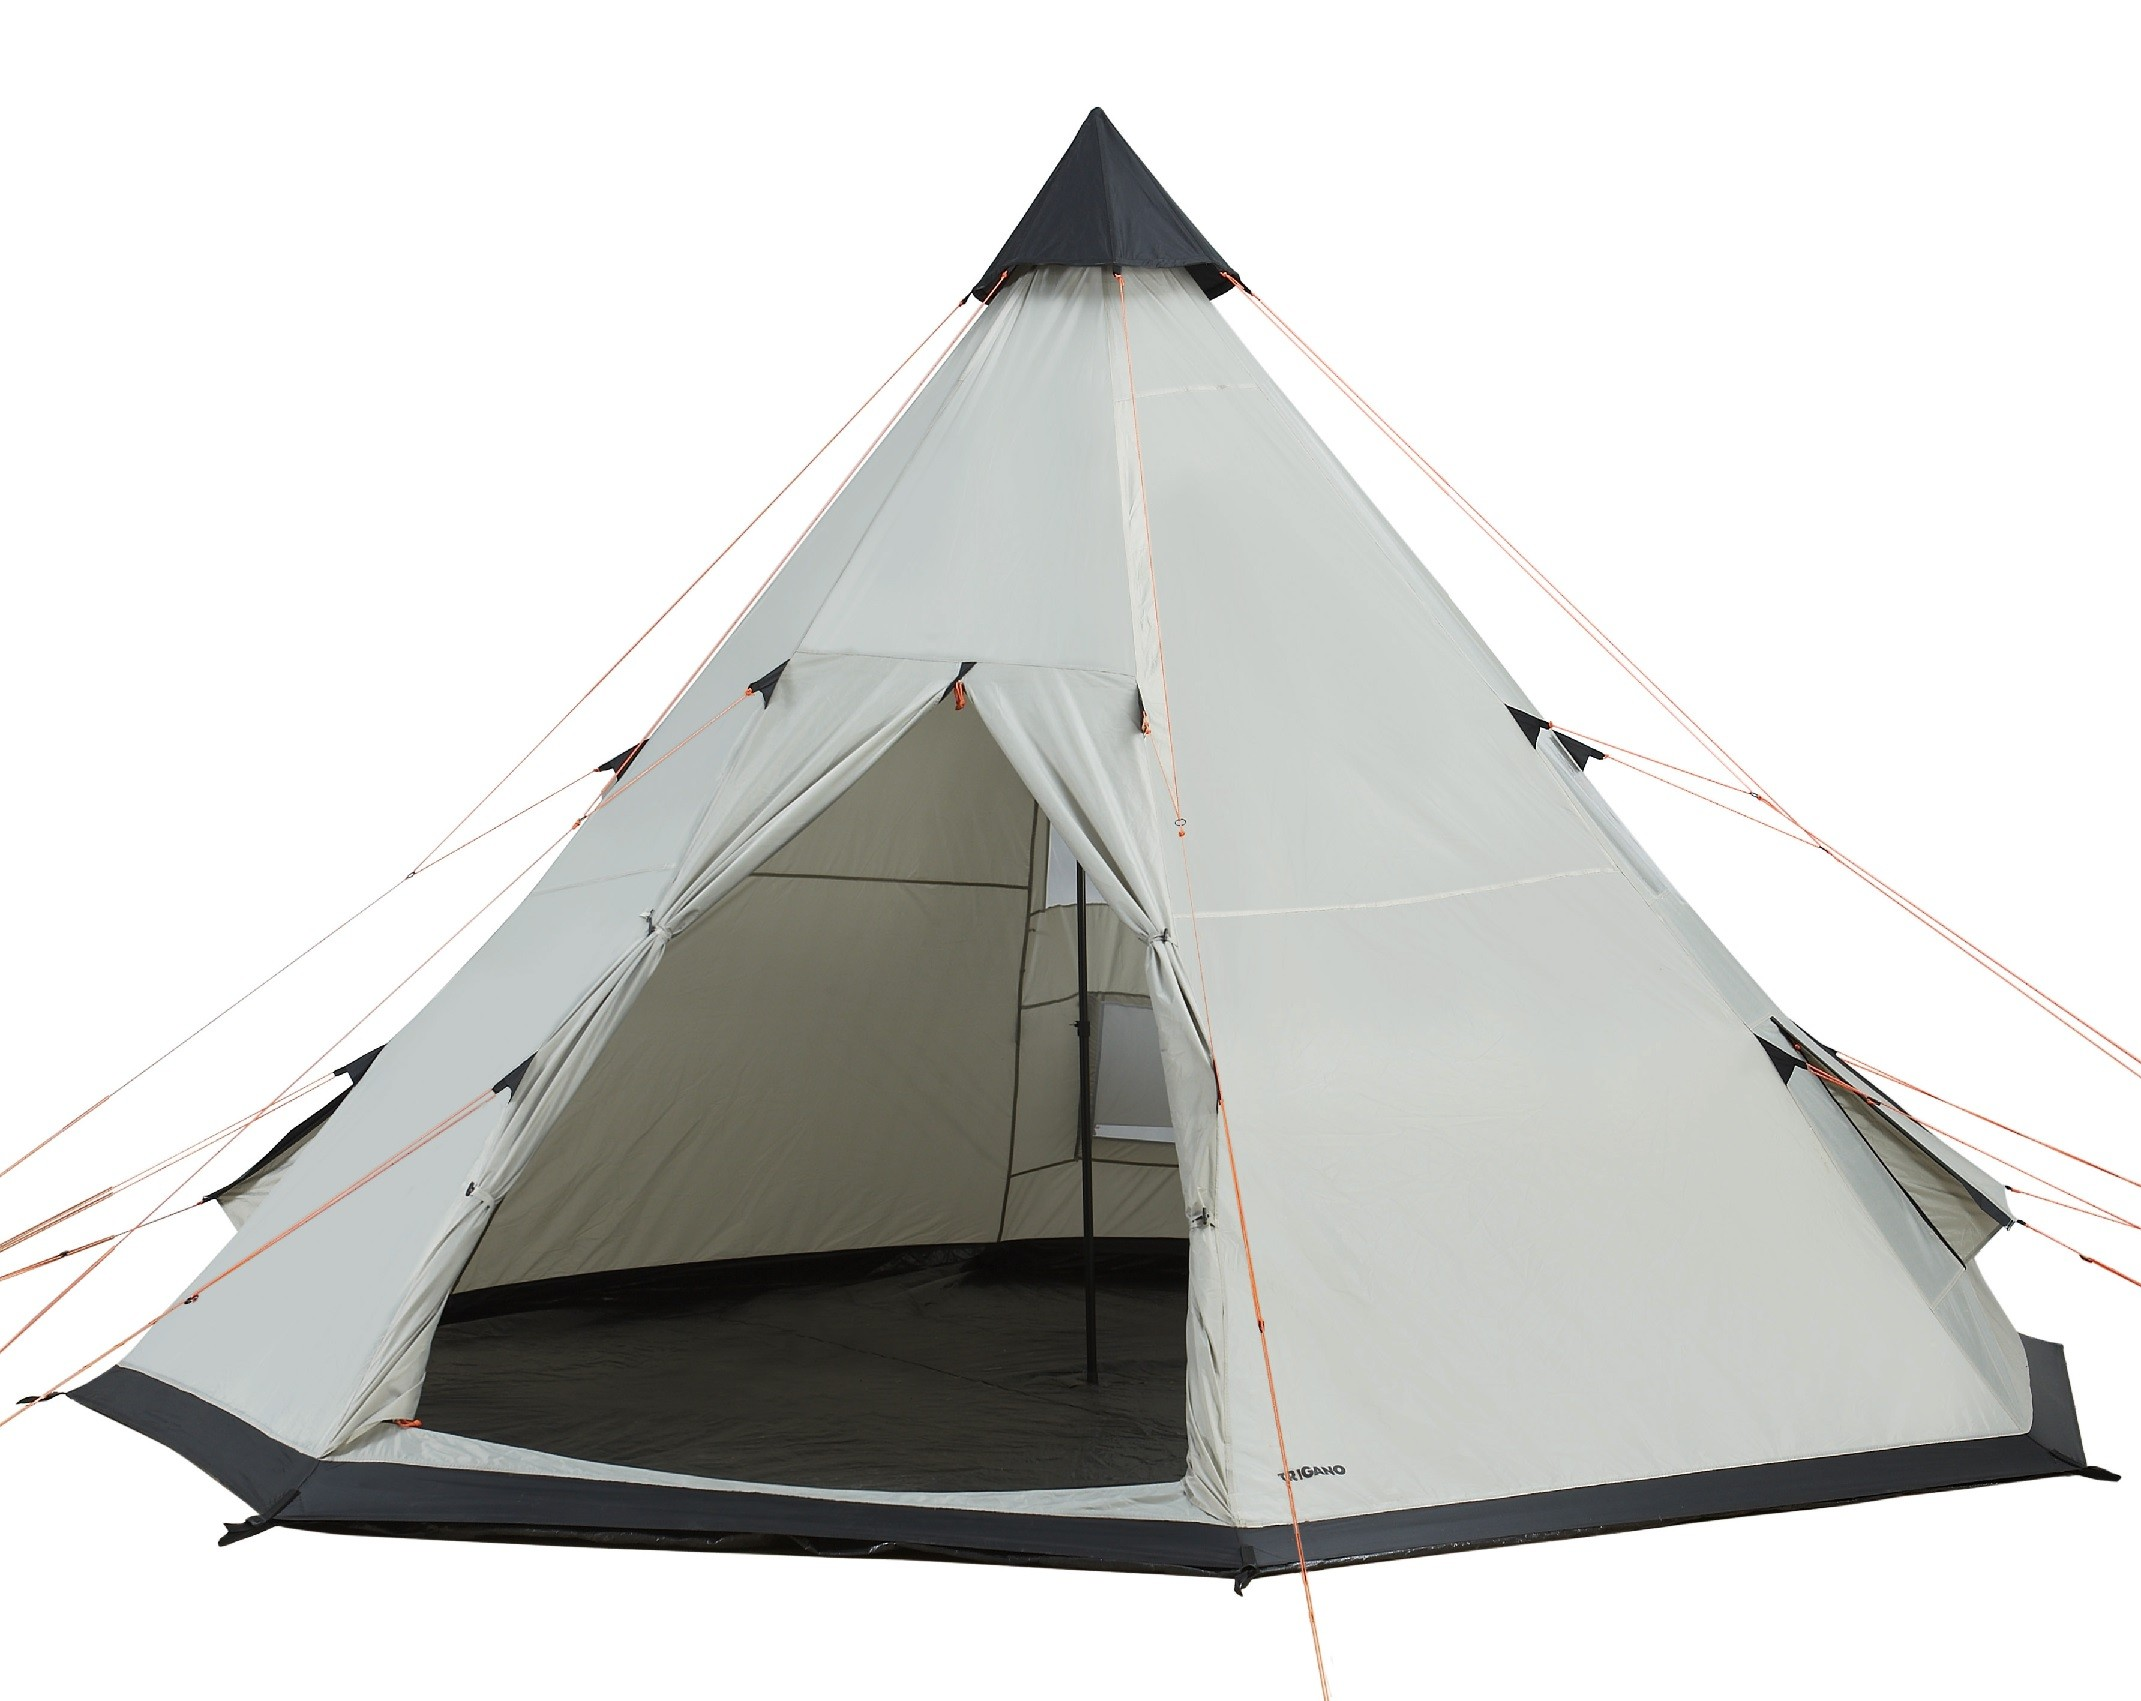 Trigano Cherokee 350 Tipi Tent By Trigano For 163 200 00